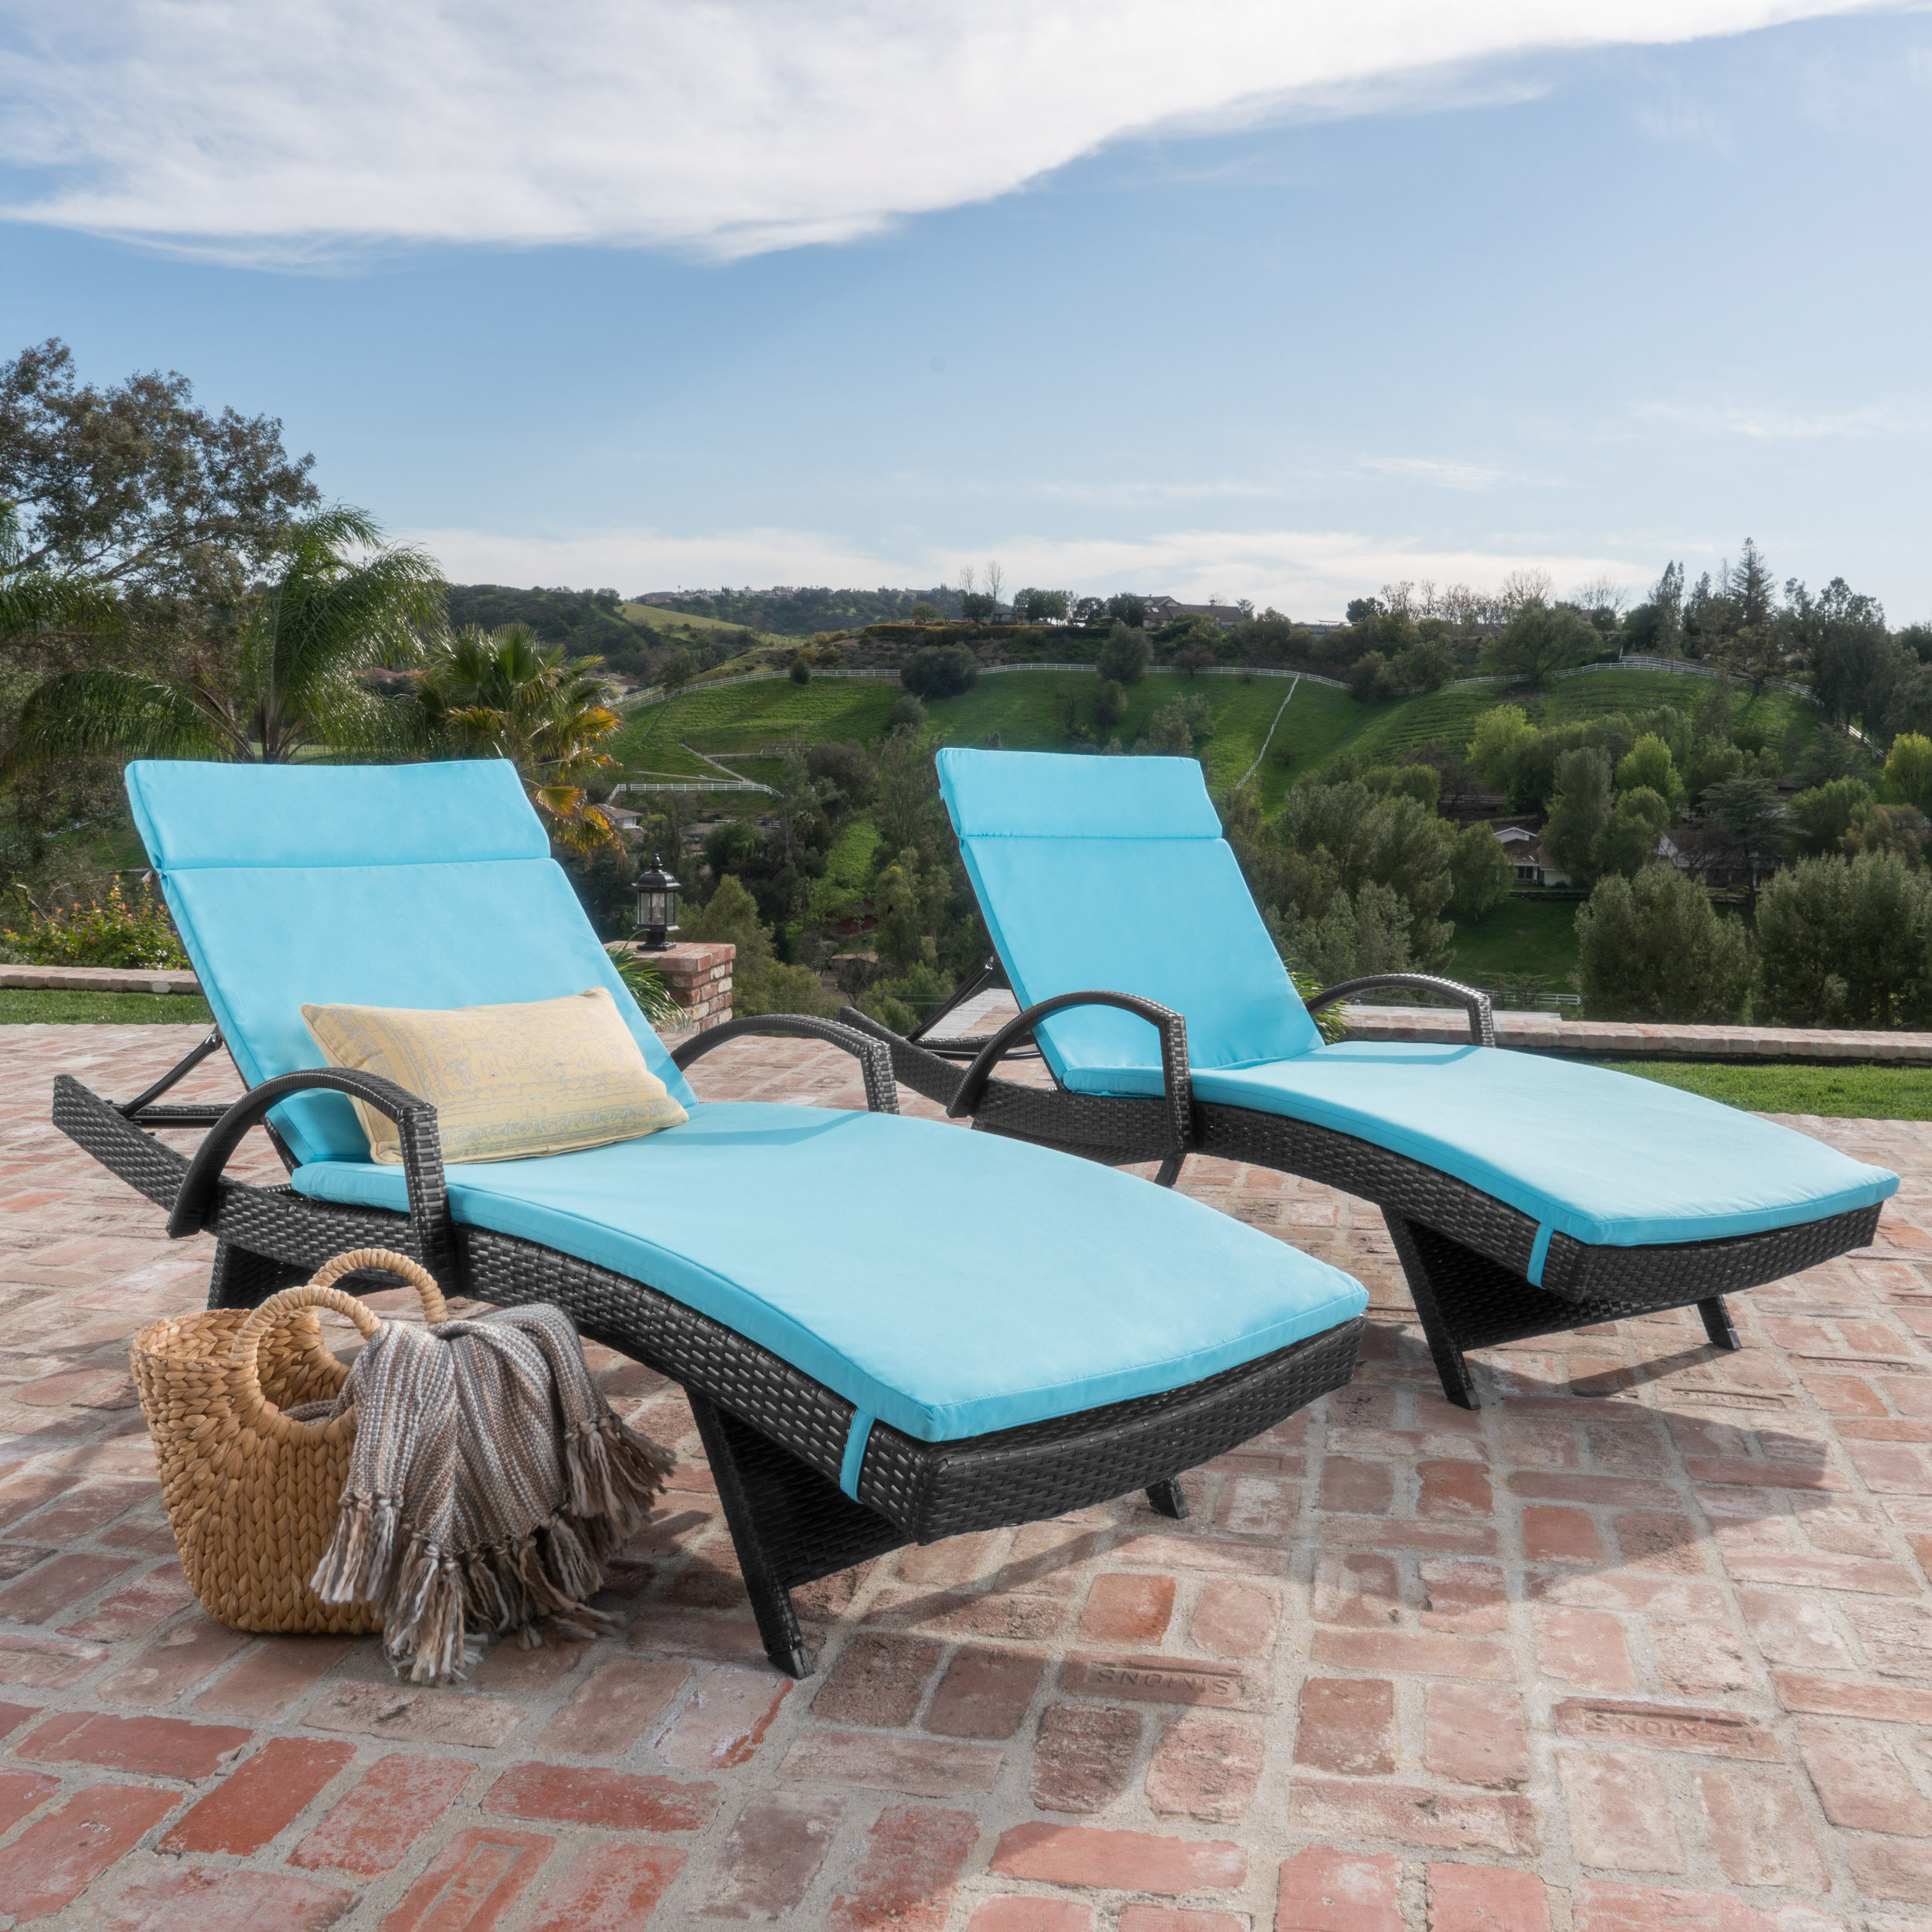 Soleil Outdoor Wicker Arm Chaise Lounges with Blue Water Resistant Cushions, Set of 2, Grey by GDF Studio